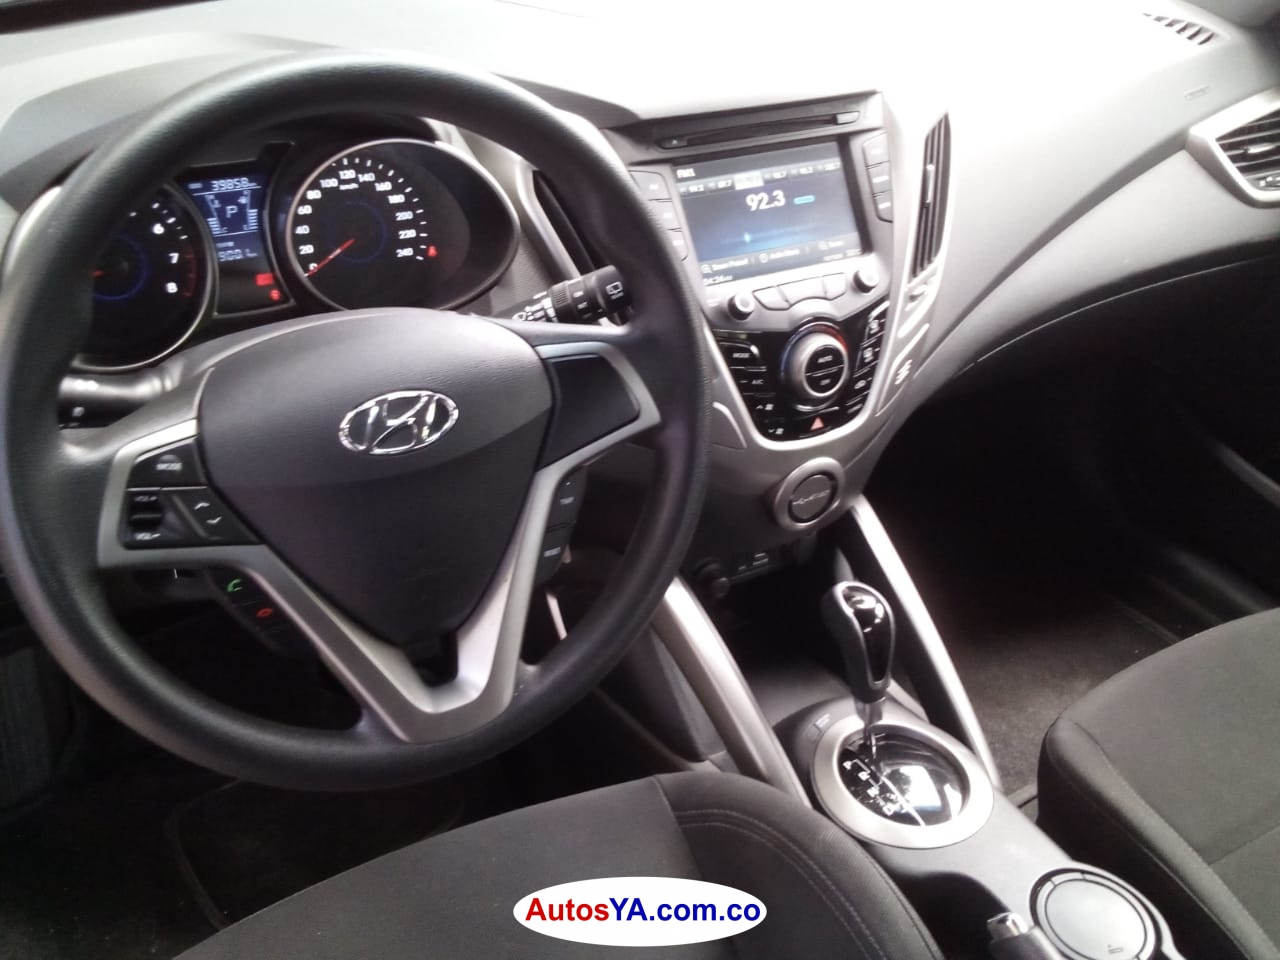 veloster2014automatico3paintdq